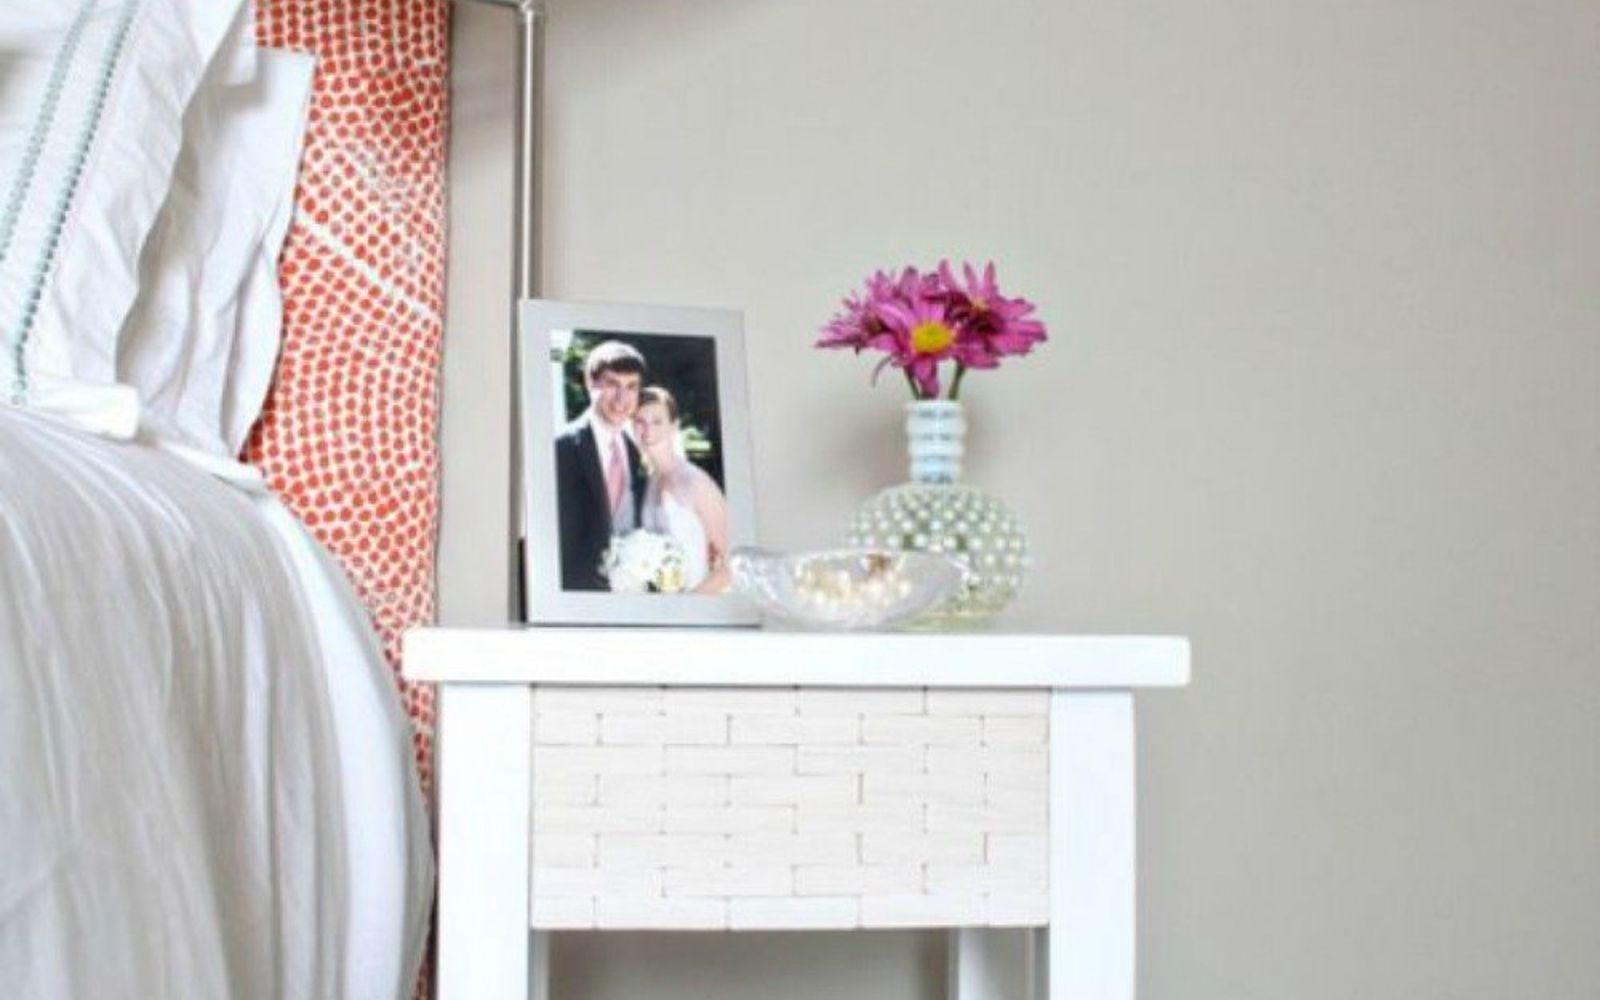 s x ways you never thought of using tile in your home, home decor, As the swankiest nightstand in your bedroom